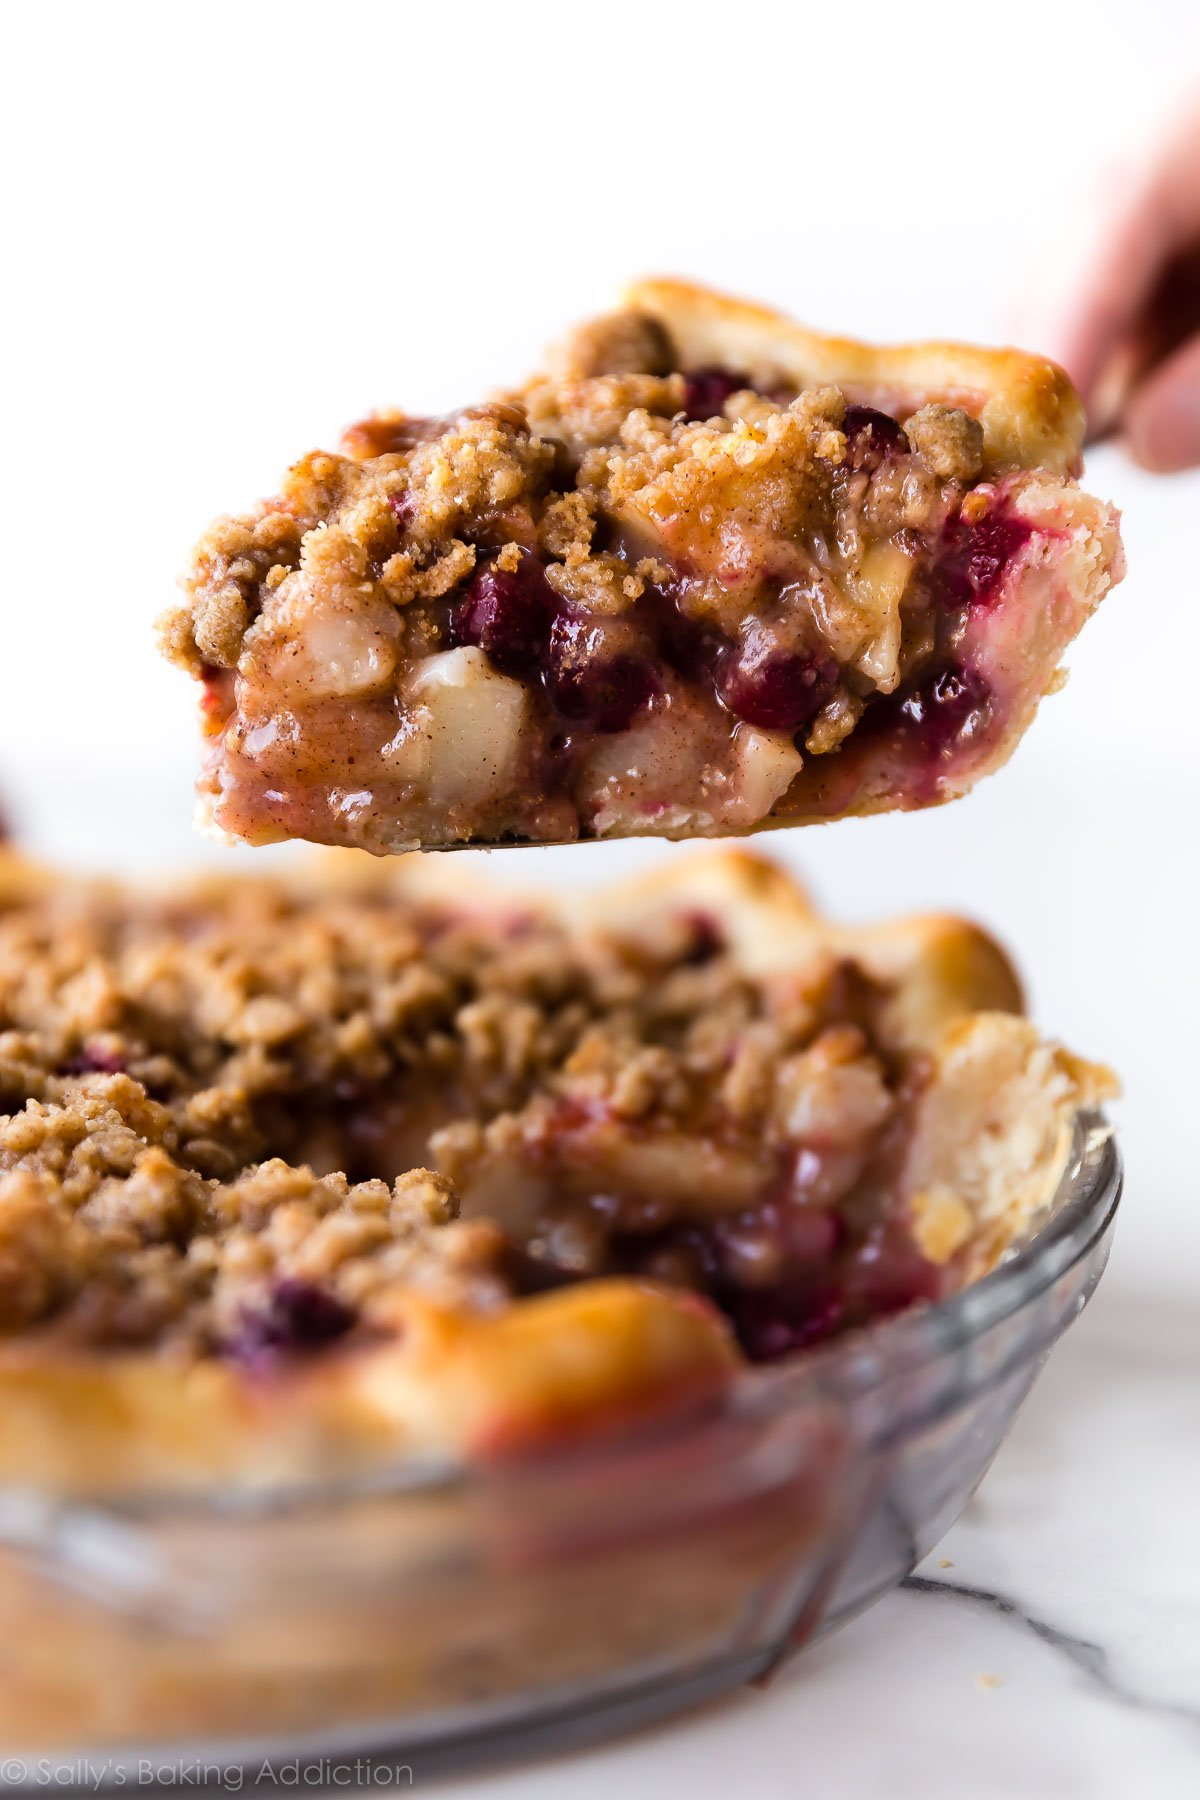 Cranberry Pear Crumble Pie | Sally's Baking Addiction